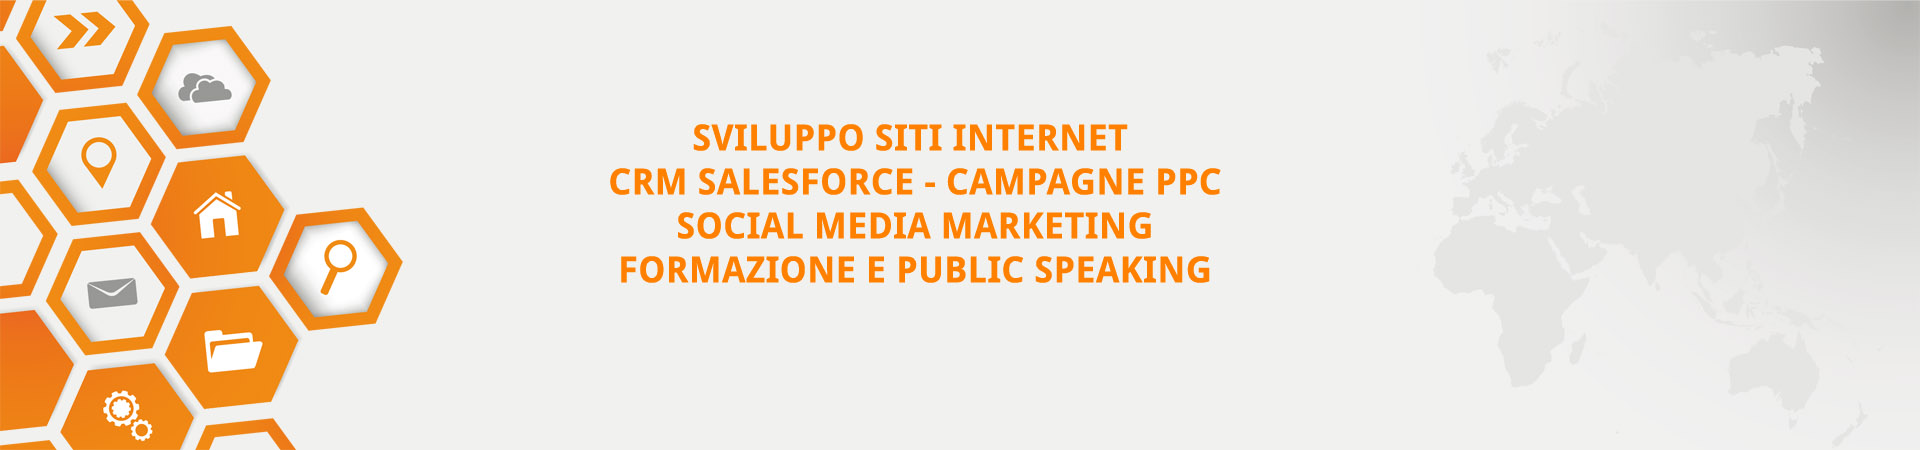 consulenza web marketing reggio emilia